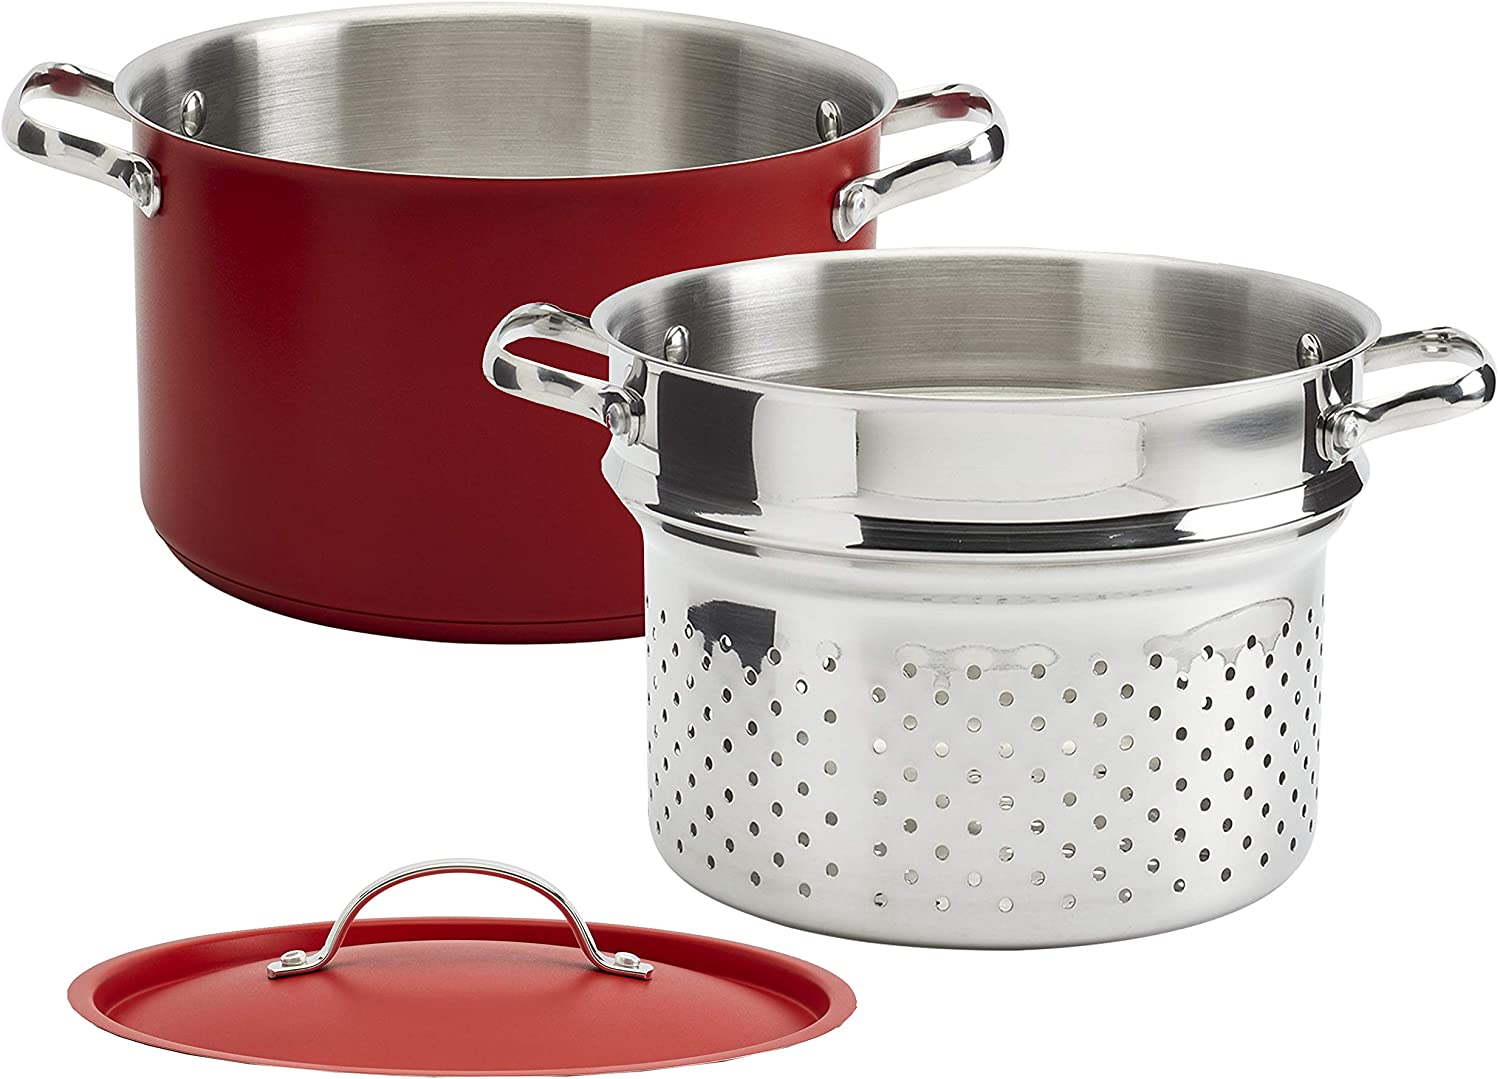 Denmark Tools for Cooks Bristol Cookware Collection- Stainless Steel Covered Dutch Oven Stock Pot Steamer Insert, 6 Quart 3 Piece Pasta Cooker in Red